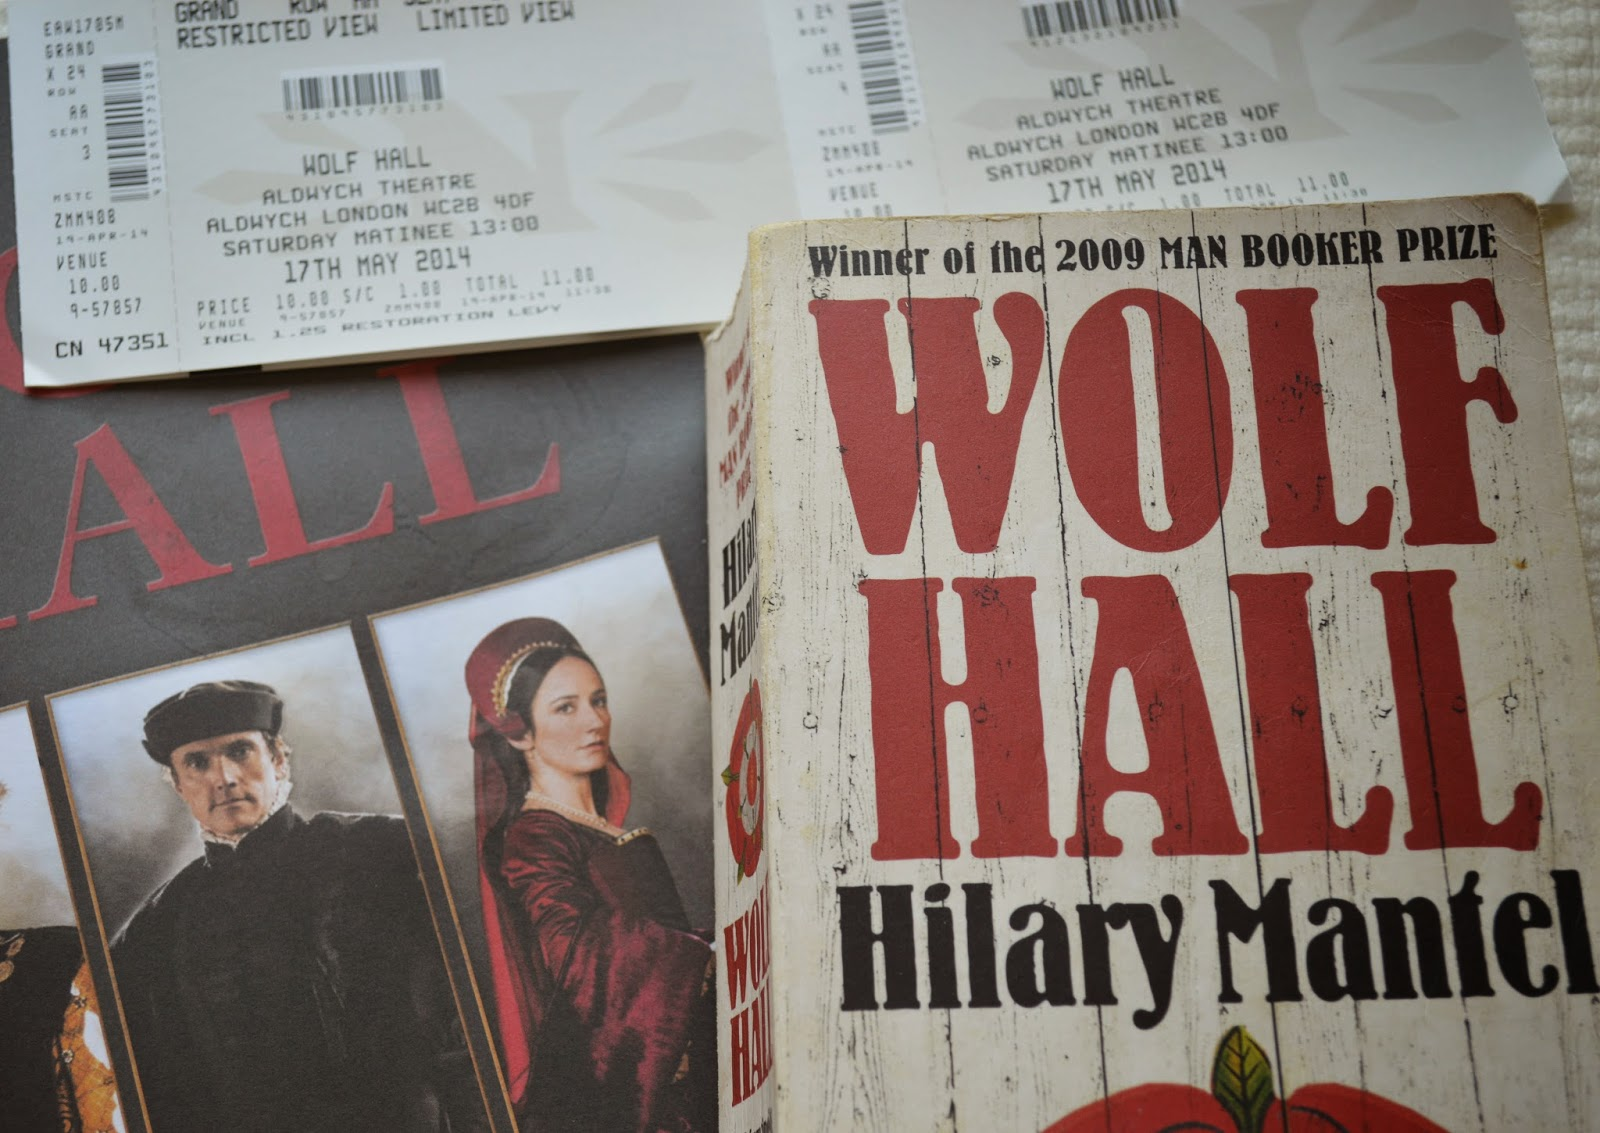 Aldwych theatre, Wolf Hall, Hilary Mantel, RSC, production, review, Row AA seat 3, 4, restricted view, tickets